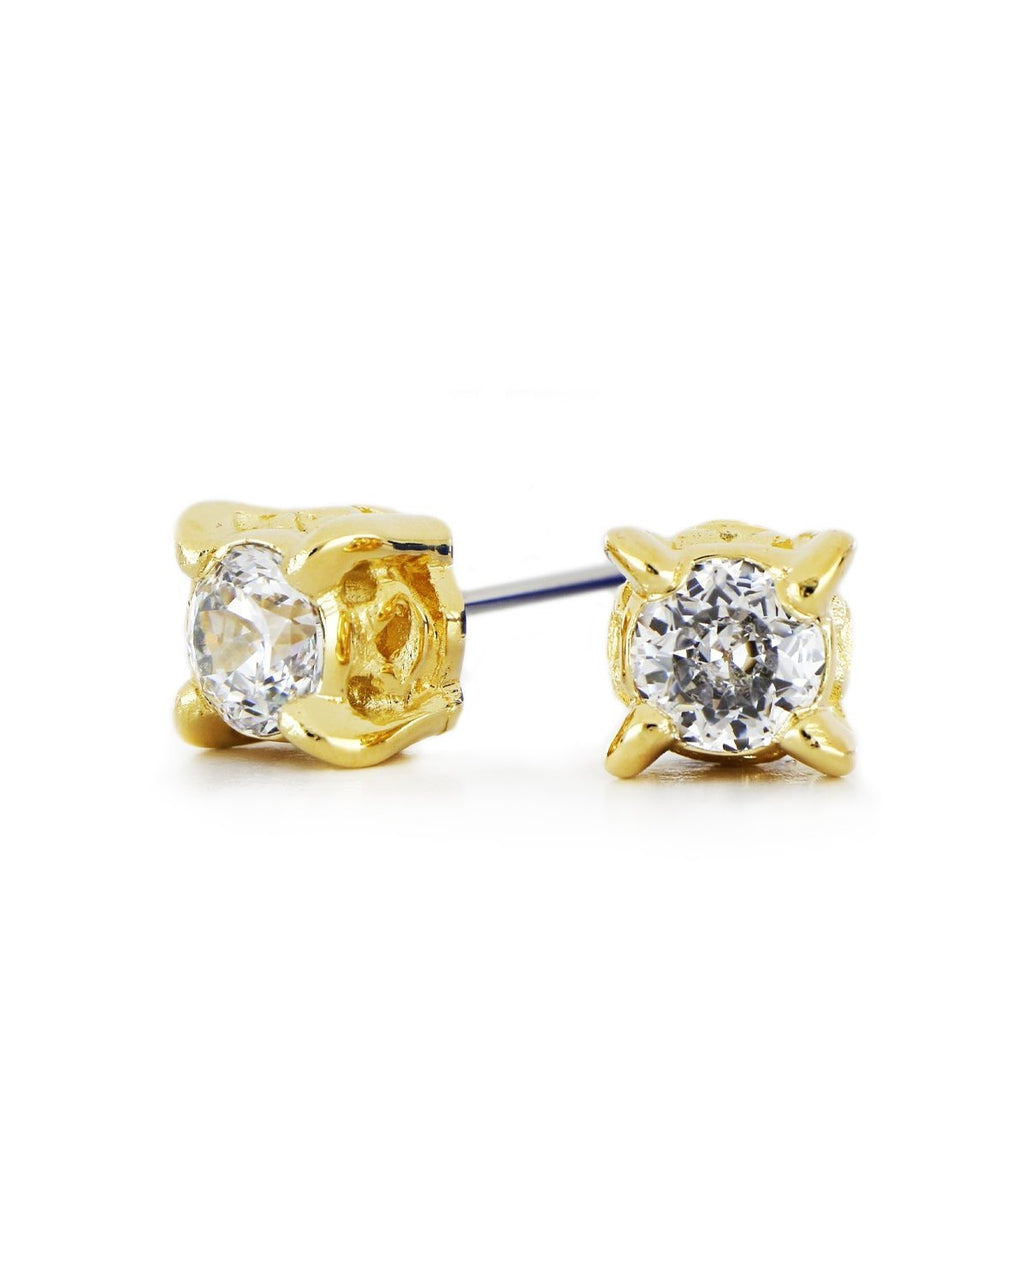 John Medeiros Diamante 1.5 Carat Gold Stud Earrings